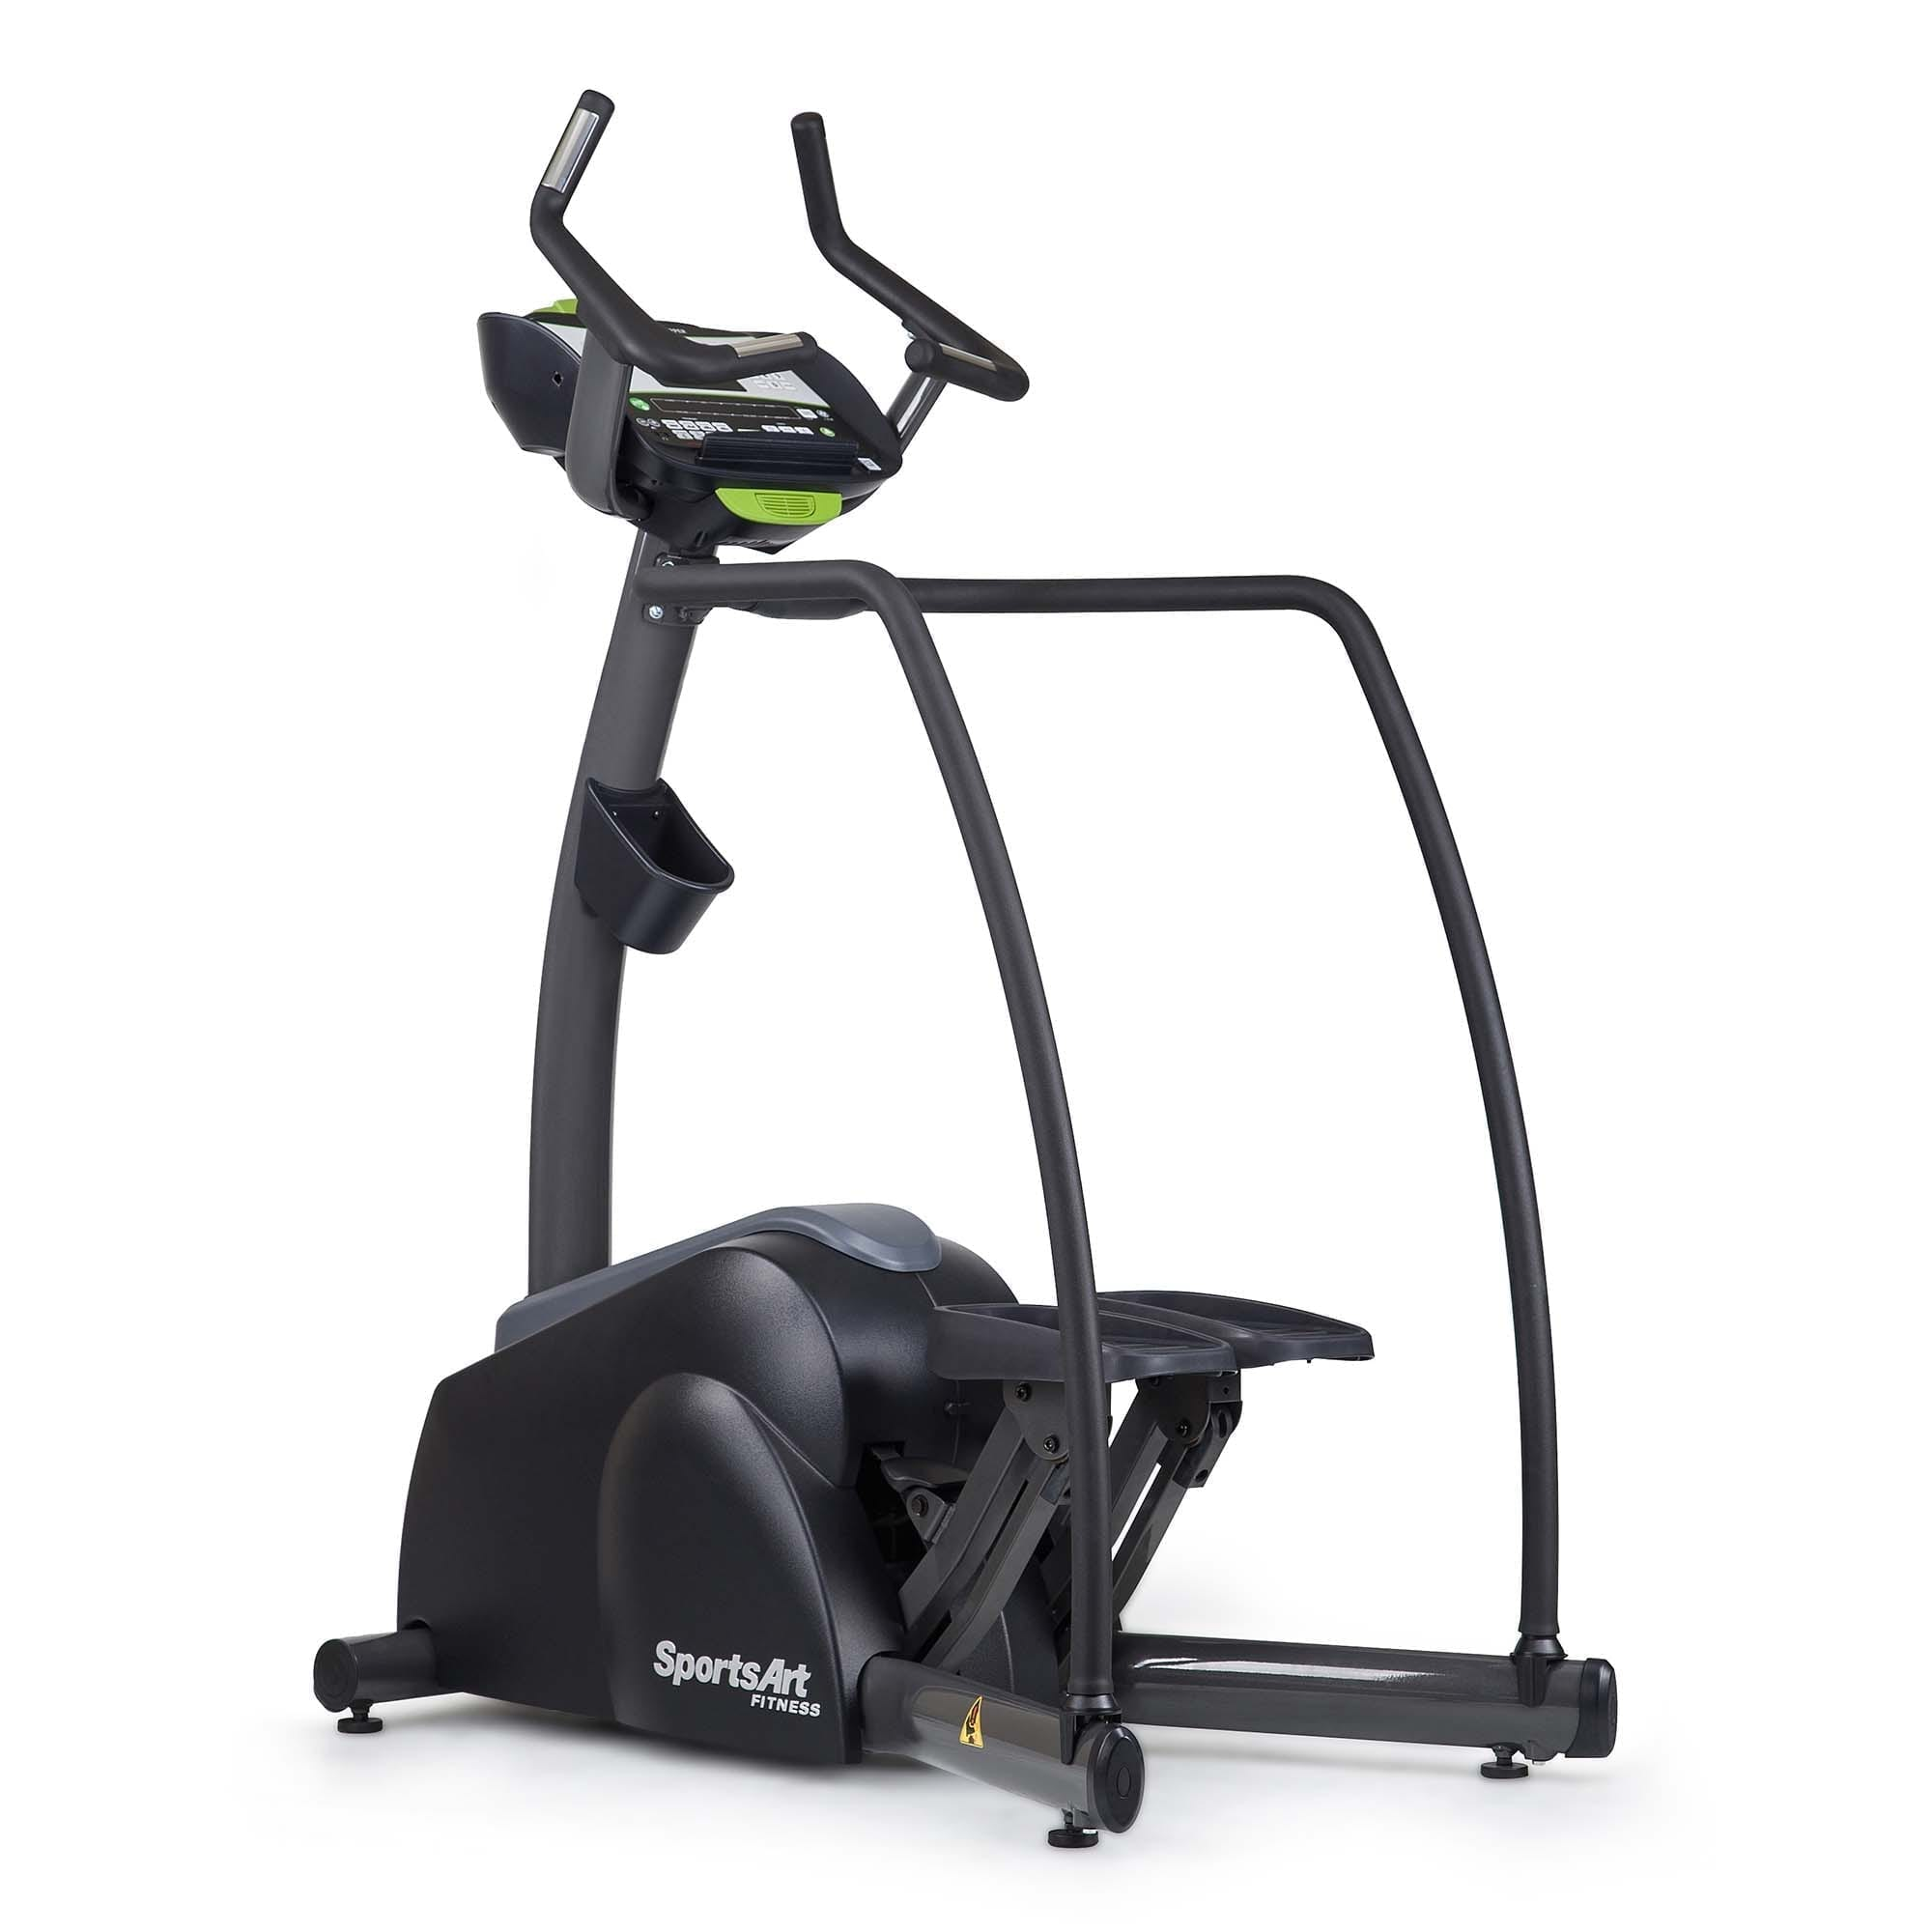 S715 STATUS SERIES COMMERCIAL STEP TRAINER - SPORTSART (S715)